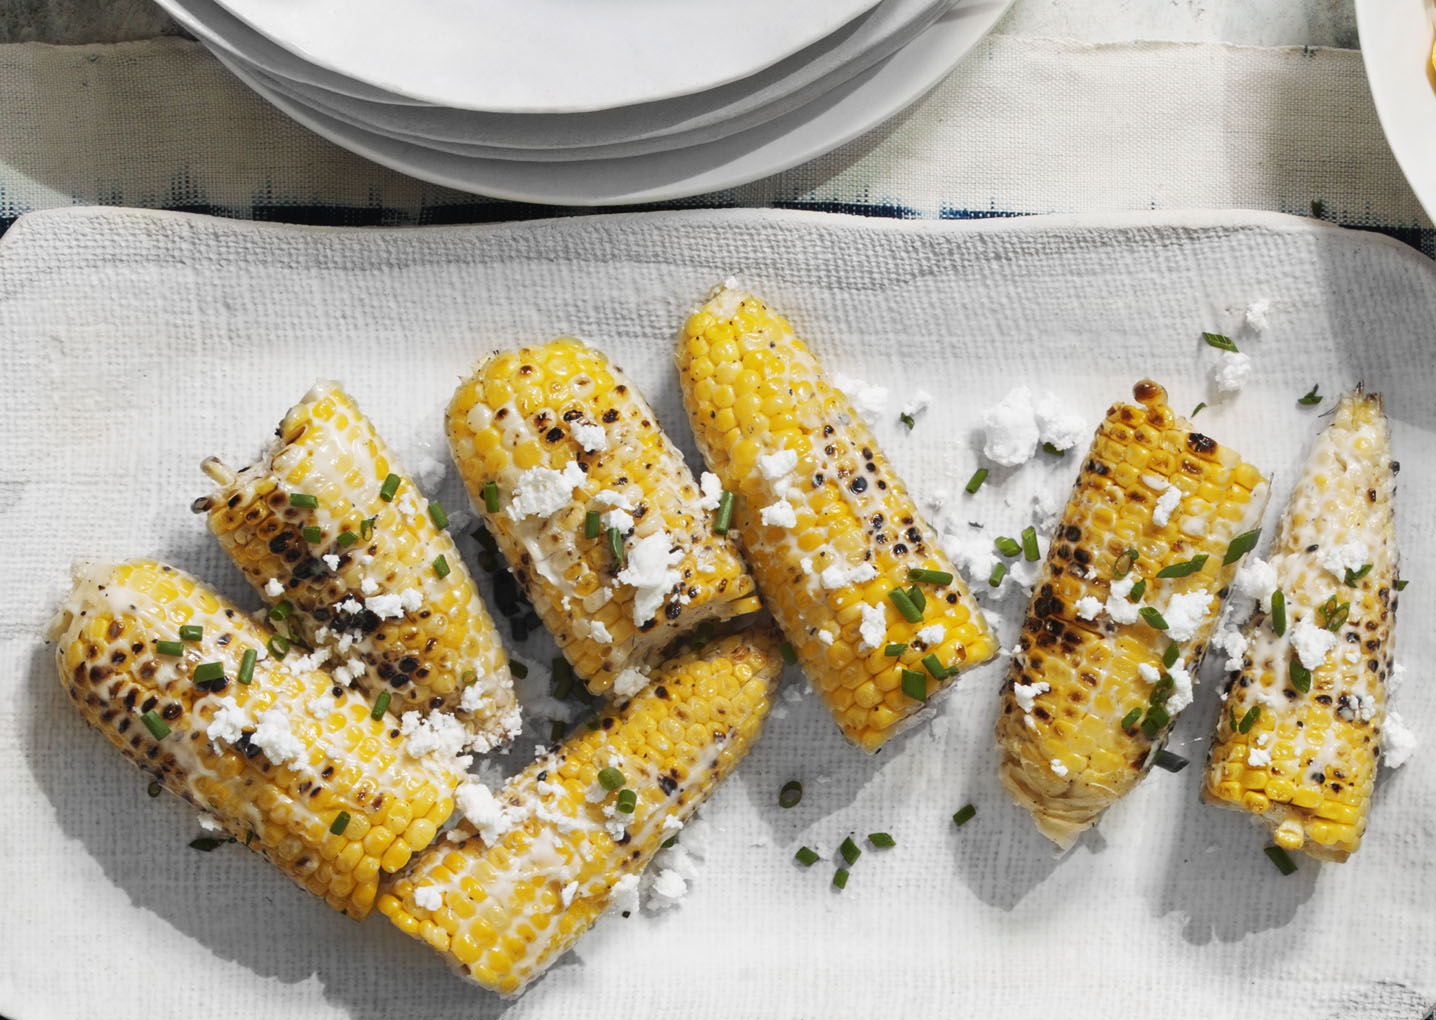 Grilled Corn on the Cob With Feta and Chives